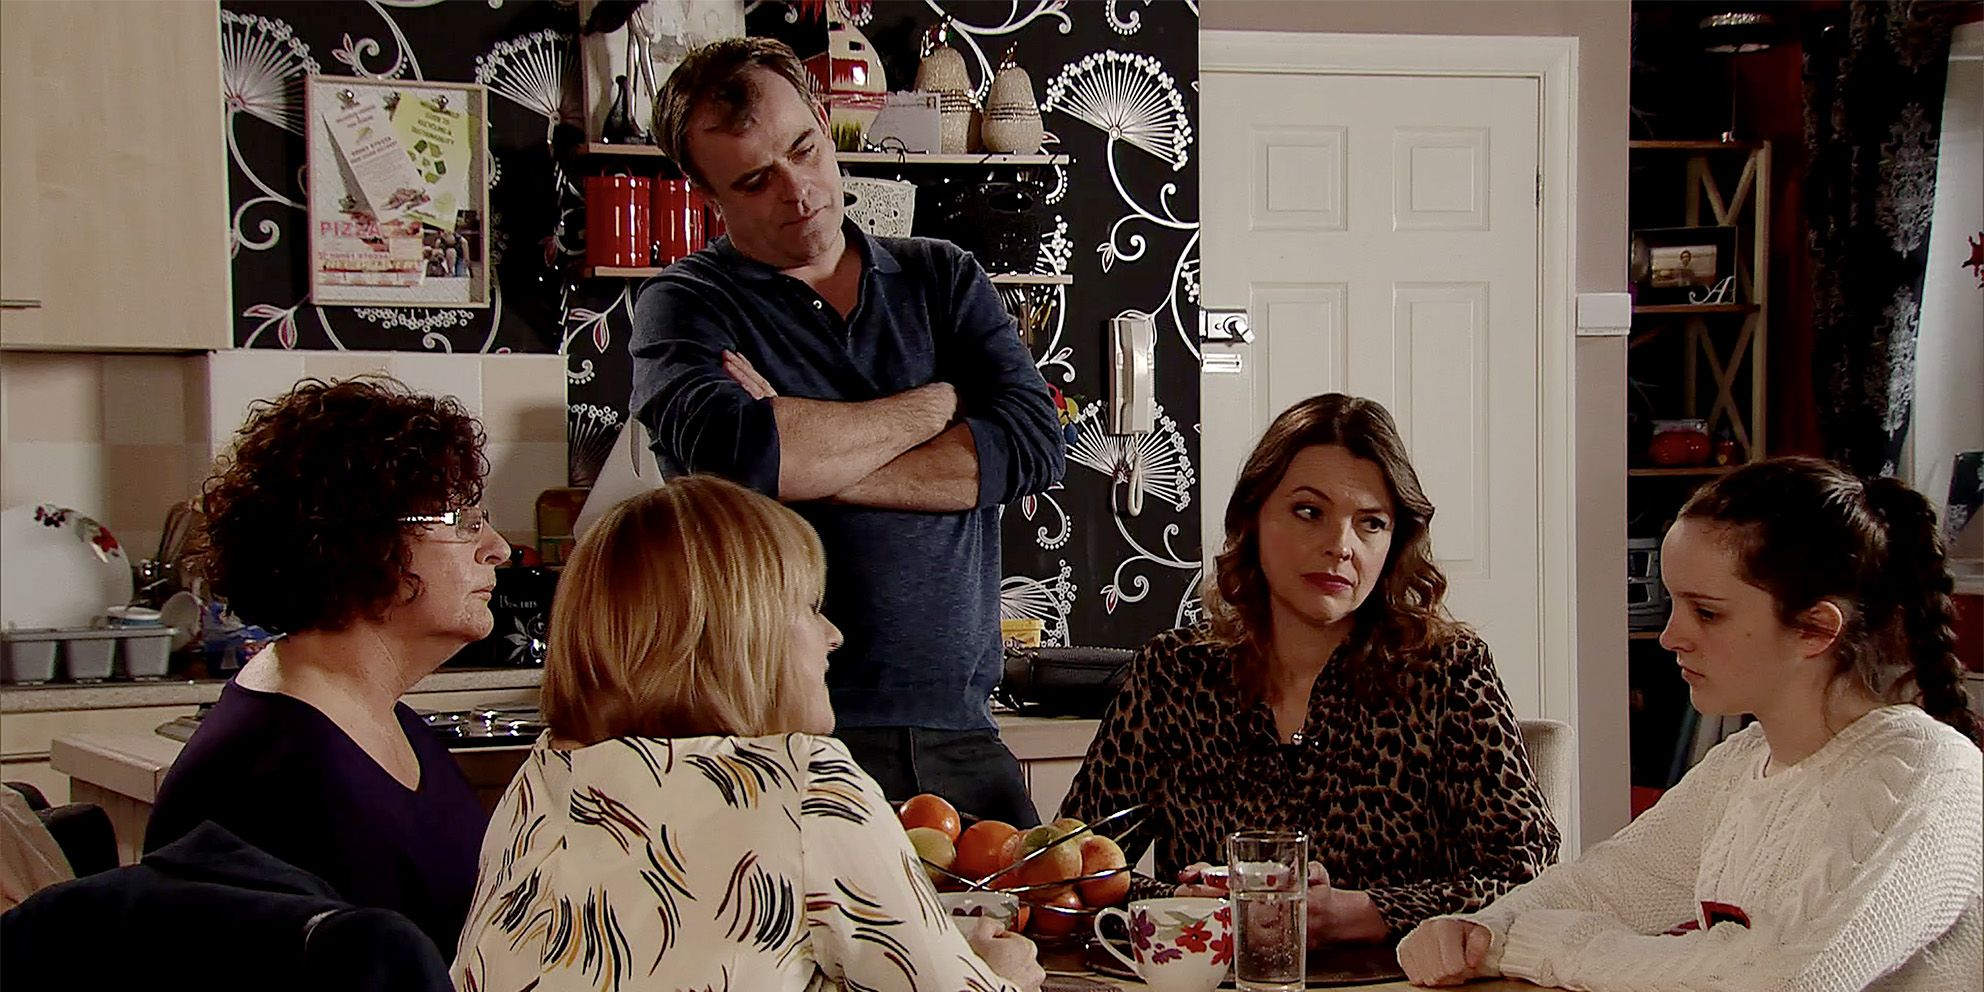 Amy Barlow is questioned by police in Coronation Street